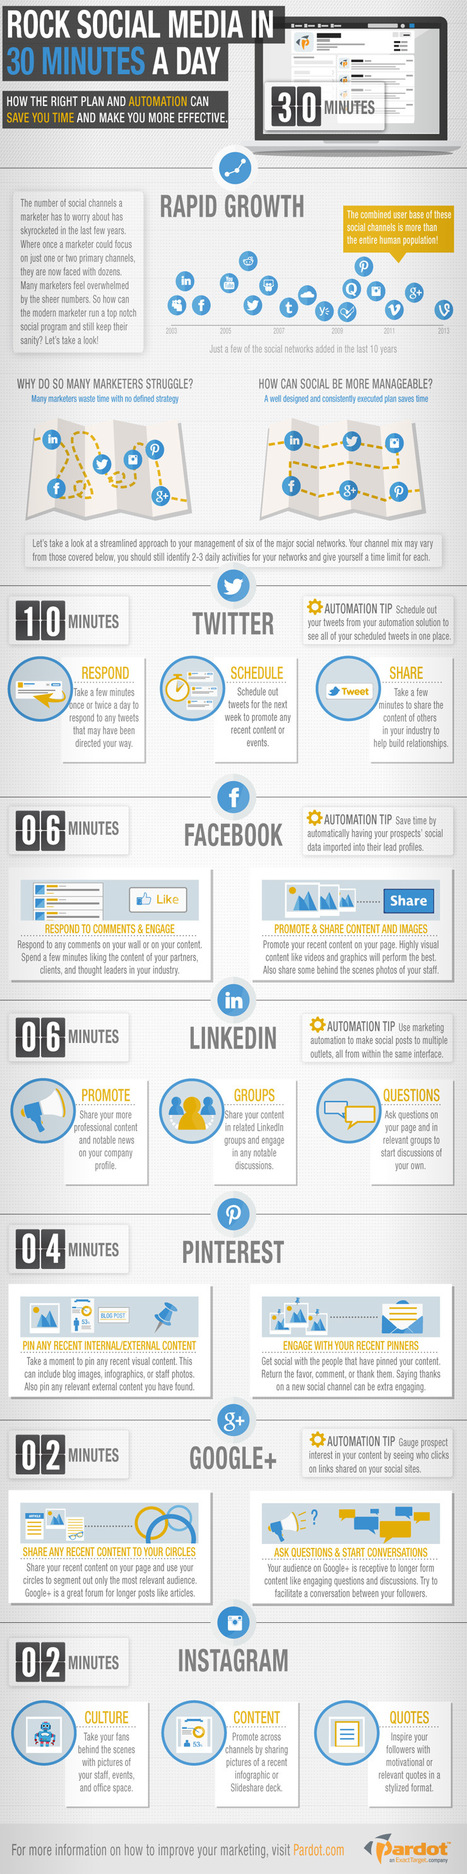 How to Rock your Social Media in 30 minutes a day – infographic | Making the Connection: Social Media Today | Scoop.it